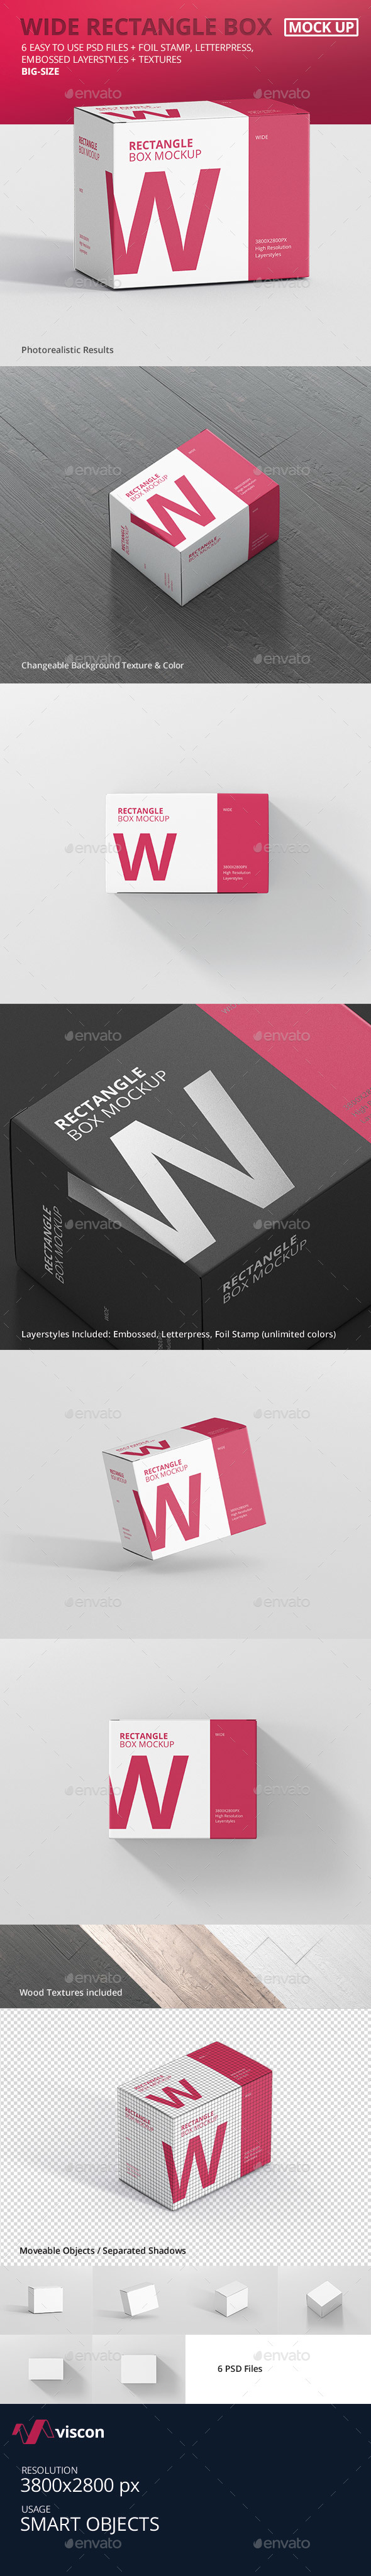 GraphicRiver Box Mockup Wide Rectangle Big Size 21042910